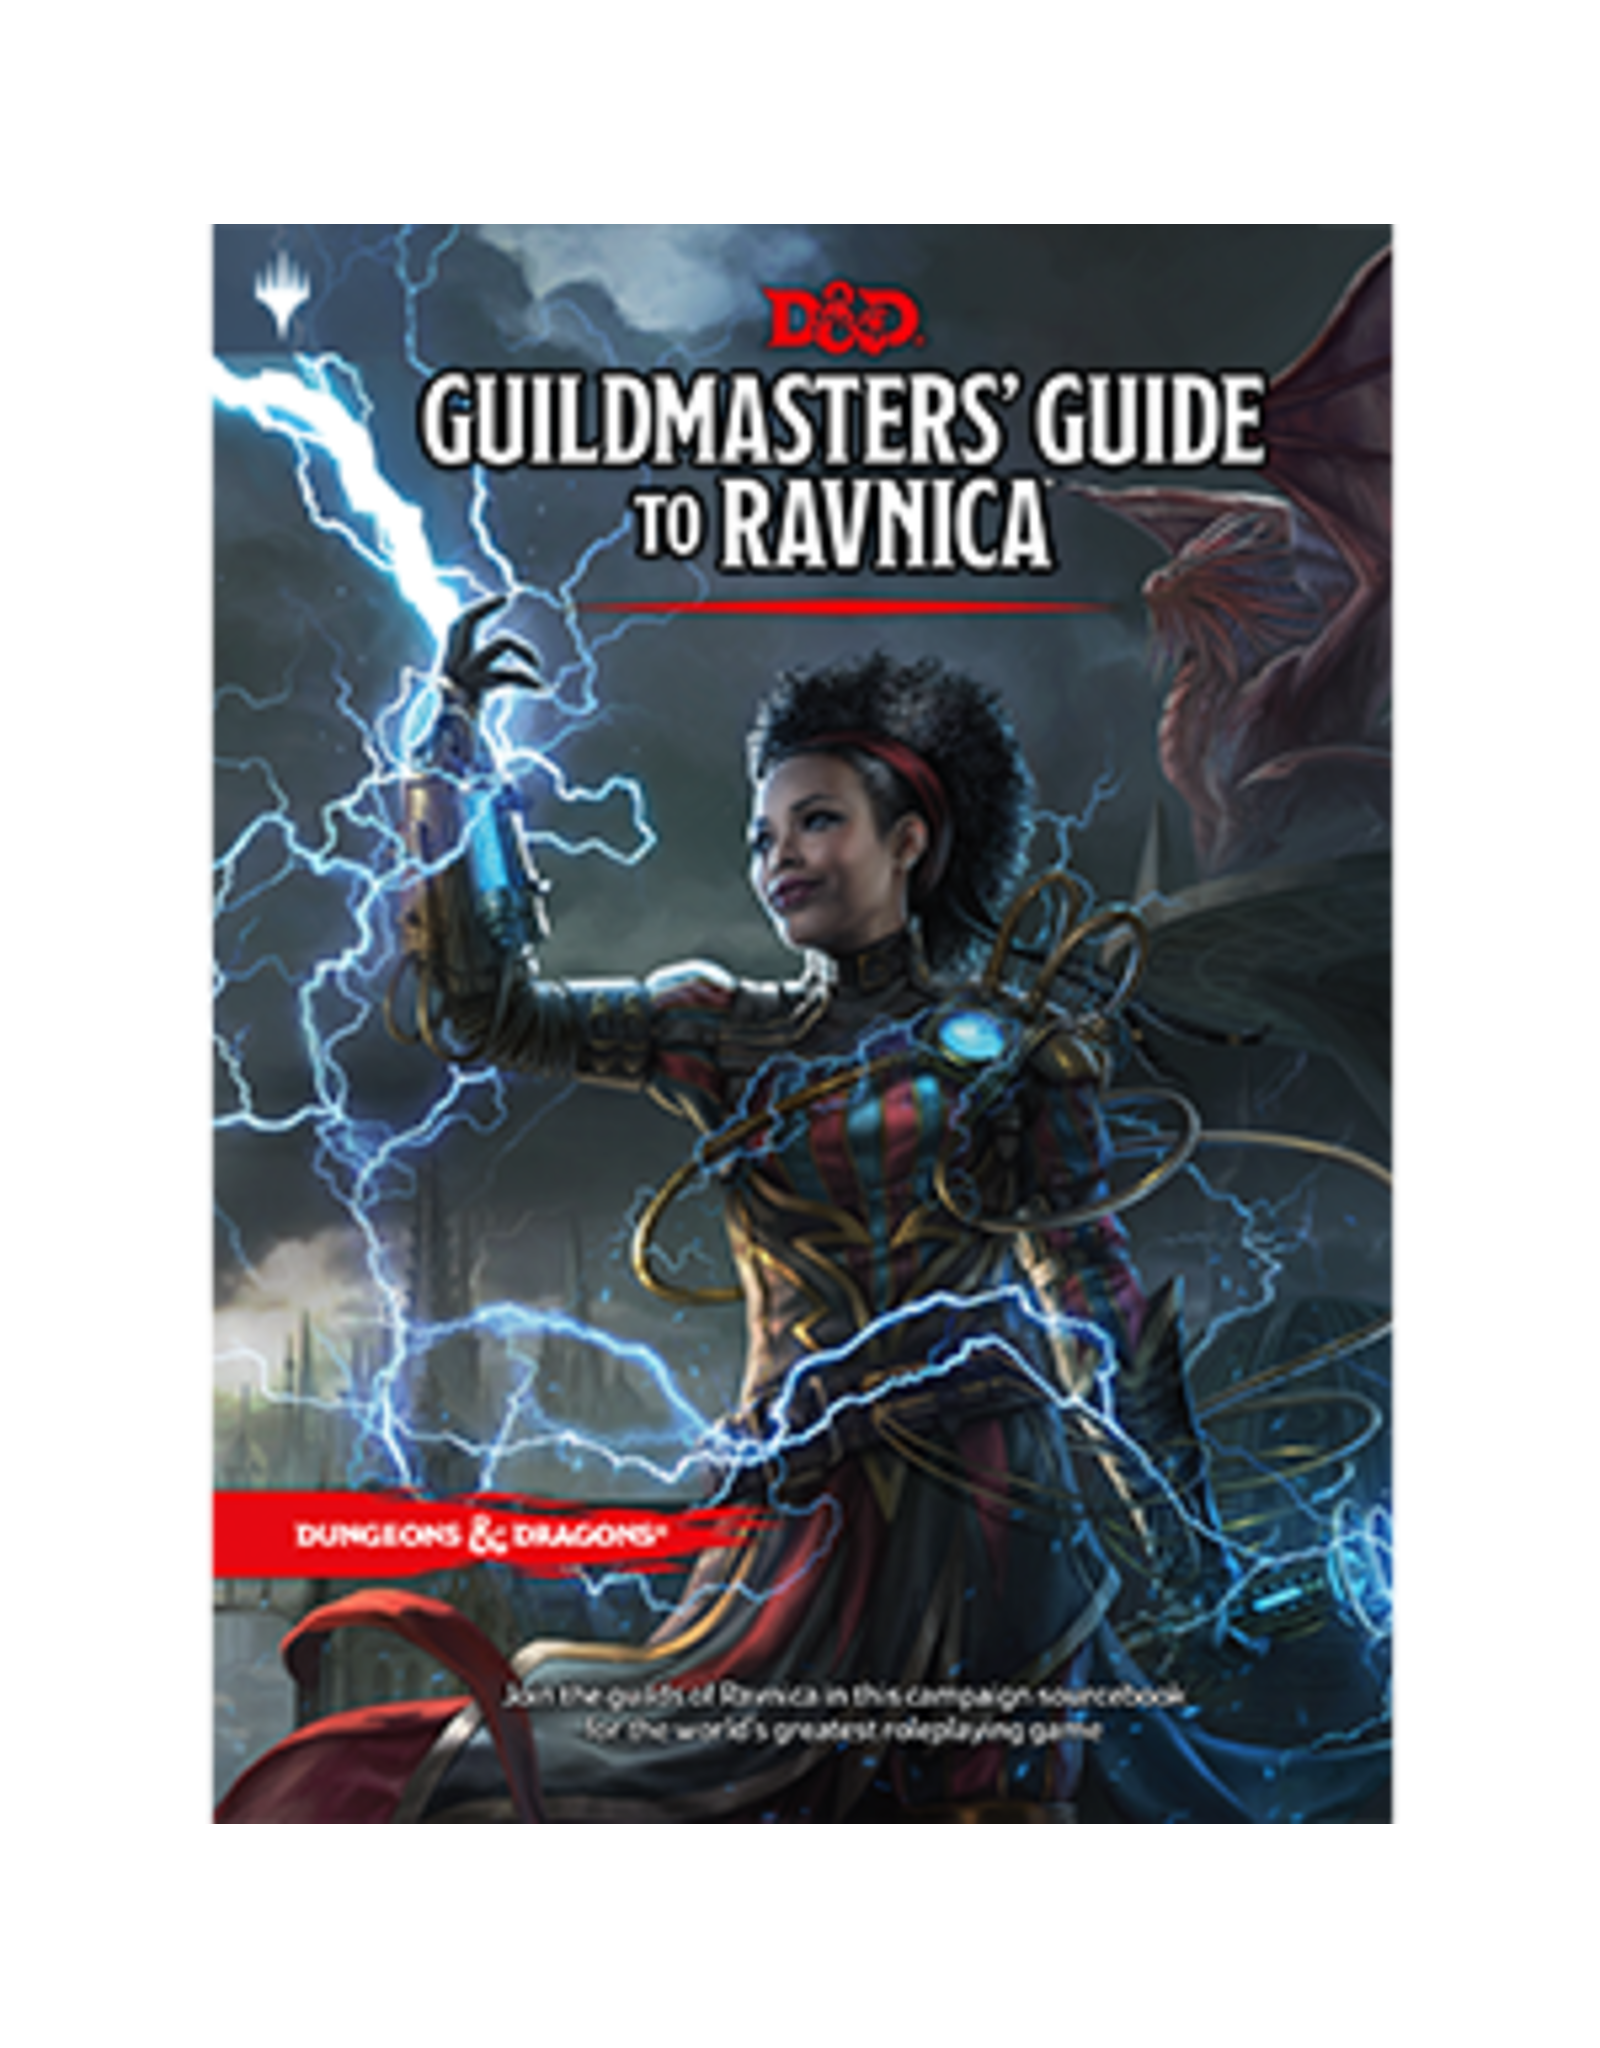 Wizards of the Coast DnD 5th Edition Guildmaster's Guide to Ravnica